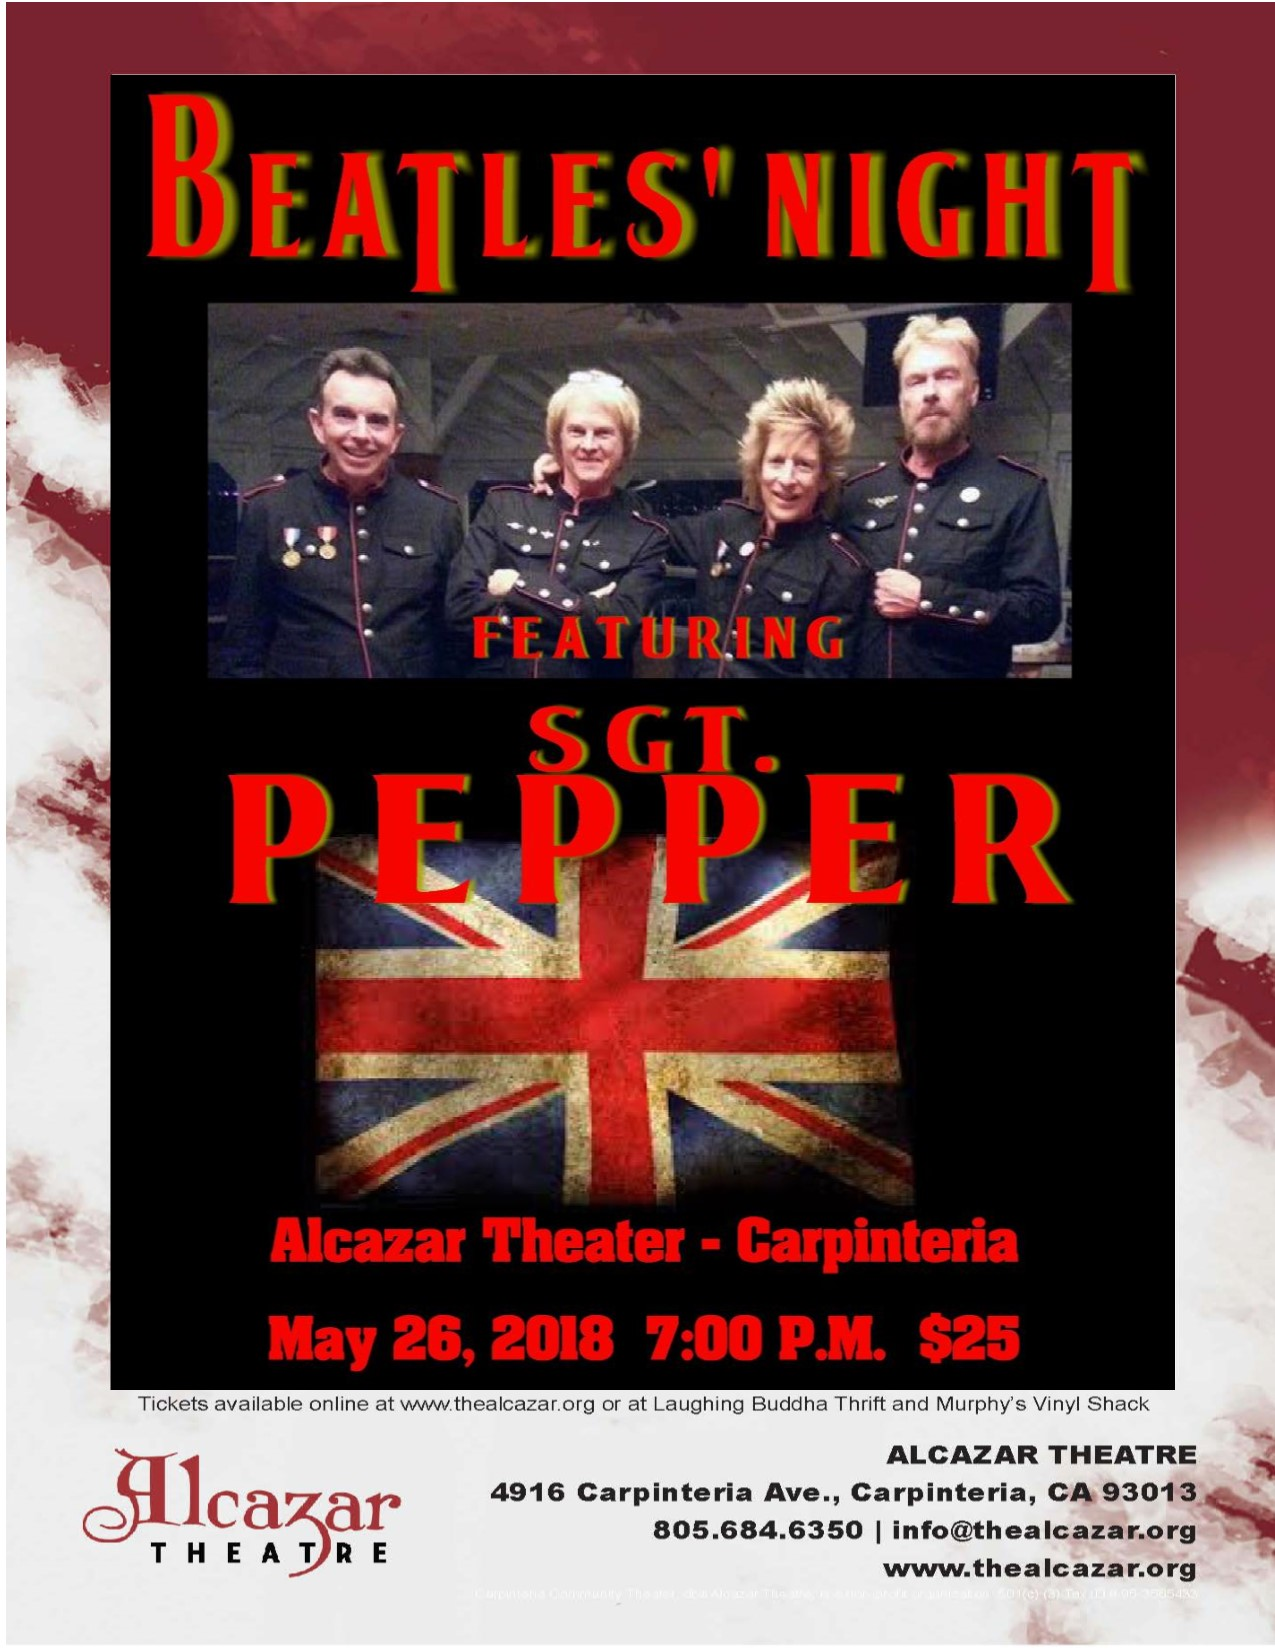 Beatles Night featuring Sgt. Pepper